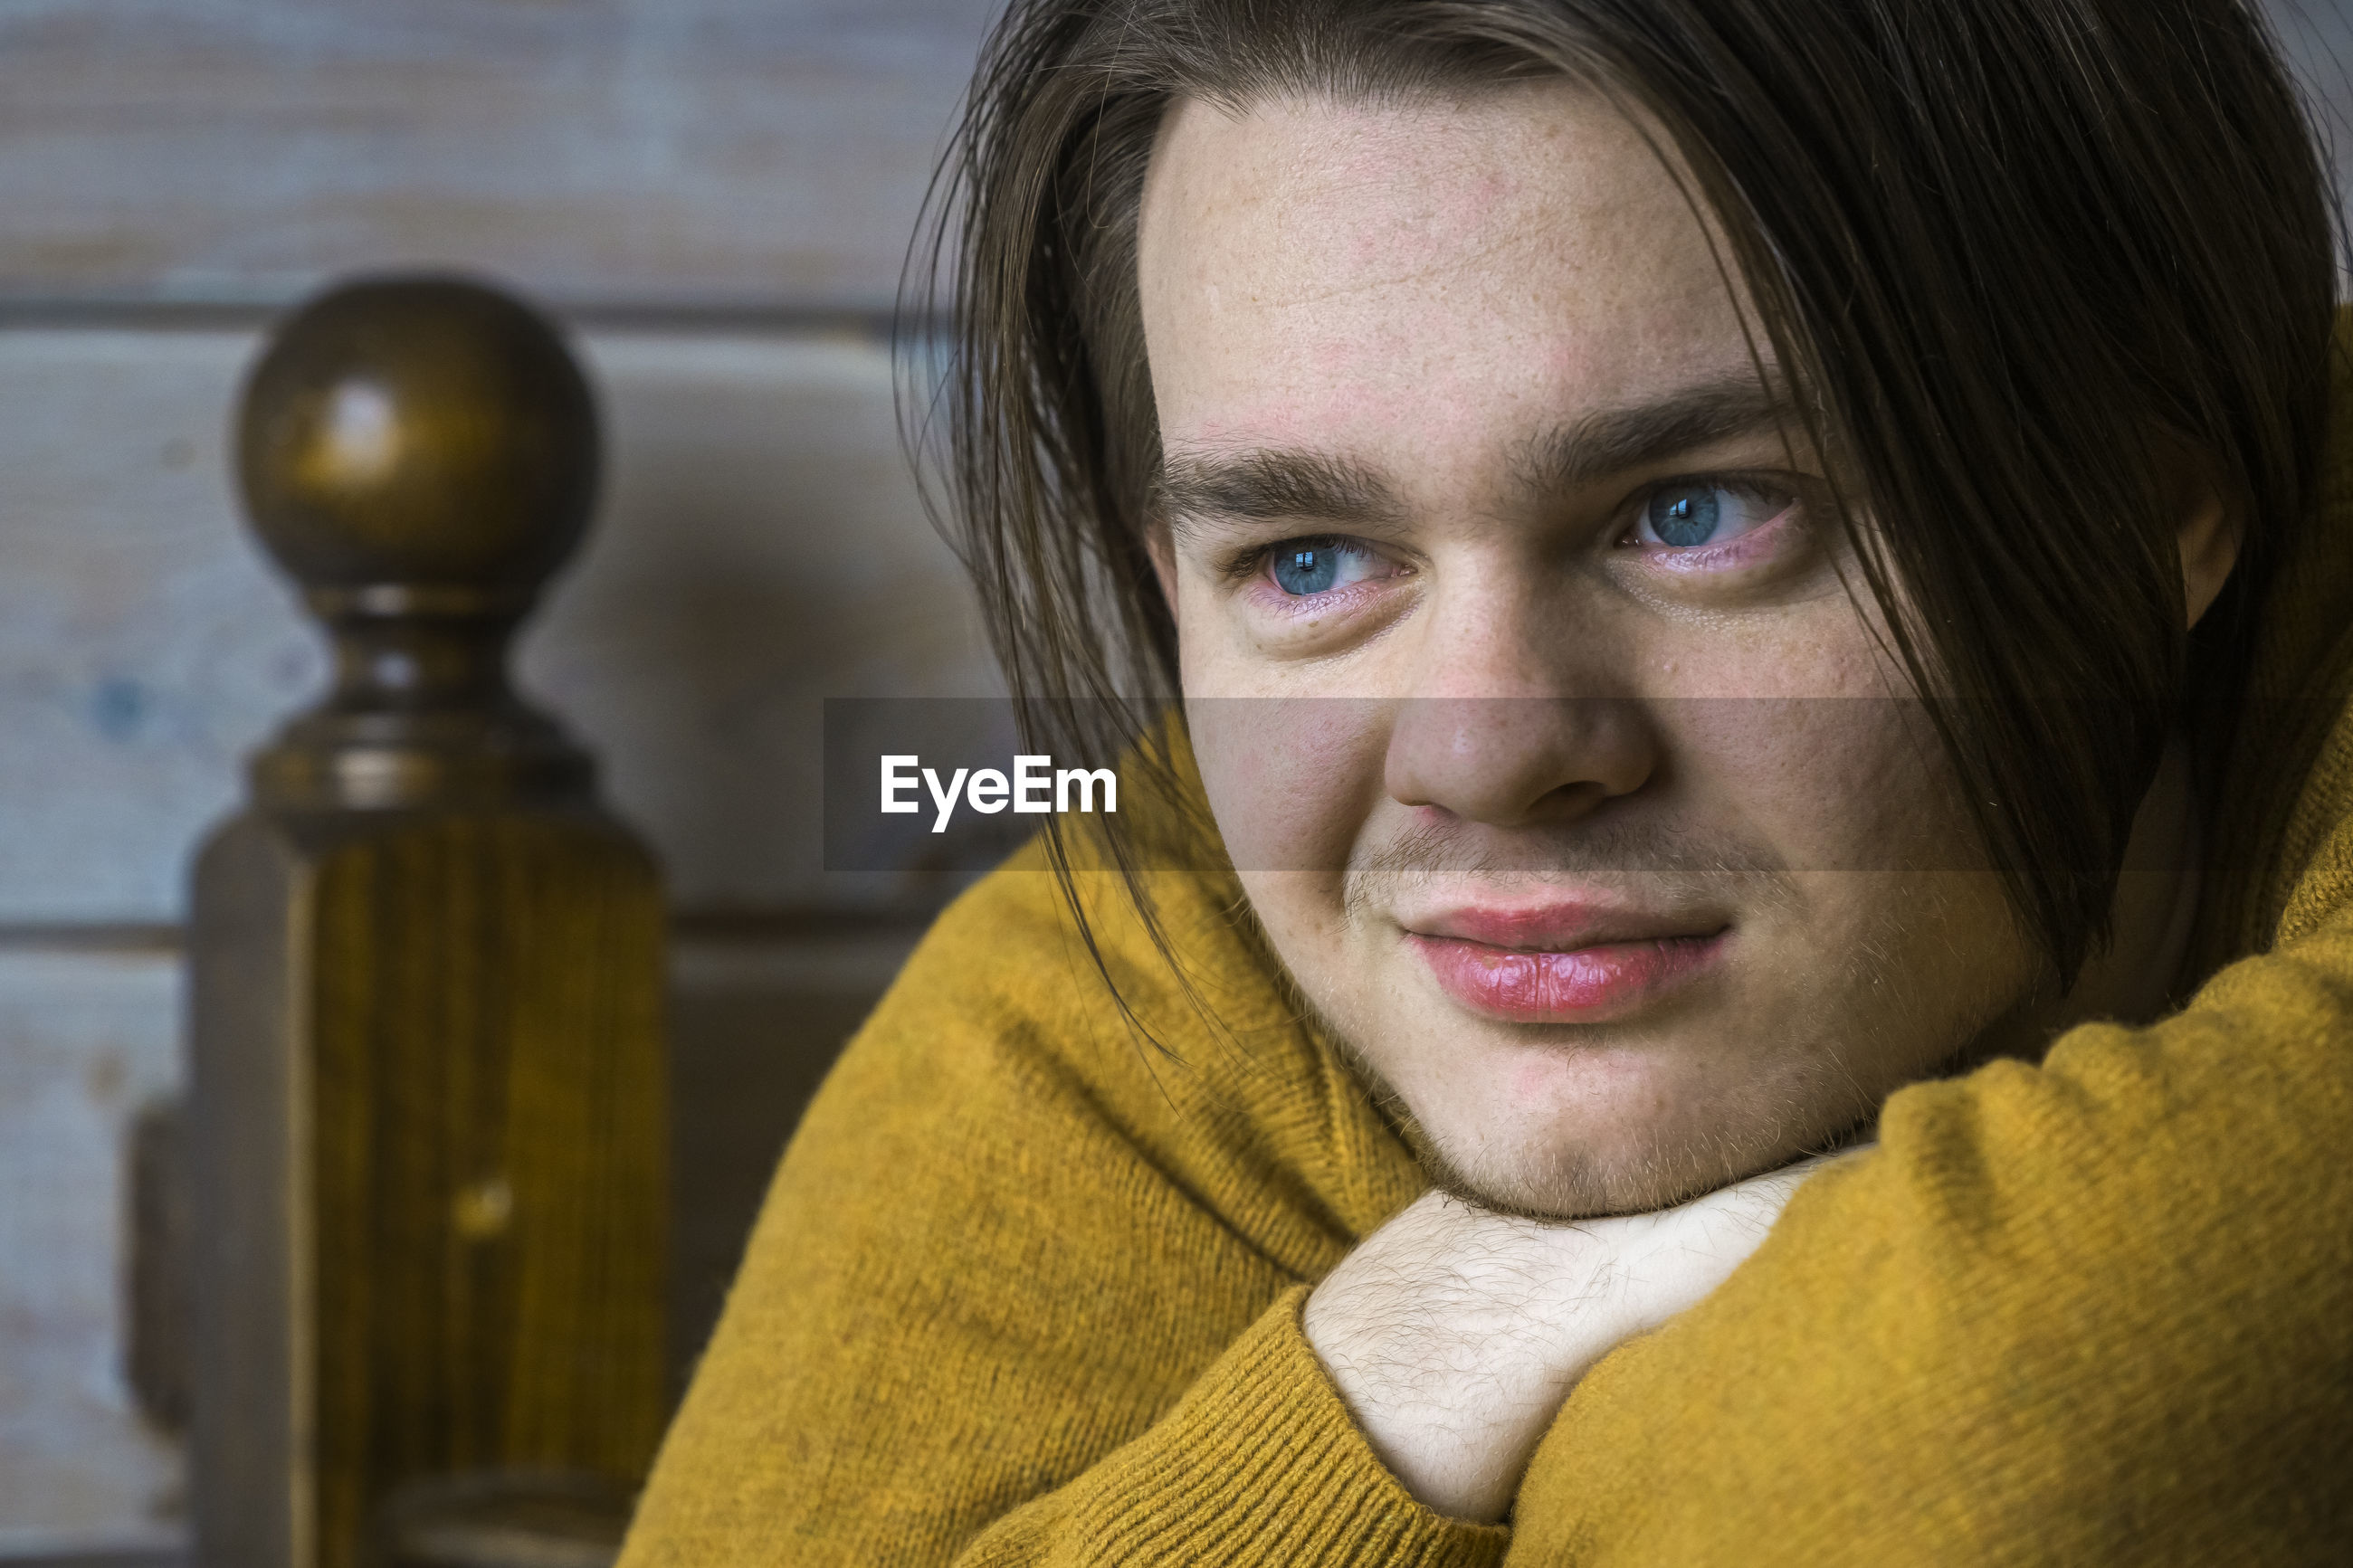 Close-up of smiling young man wearing sweater looking away while leaning on wooden railing at home